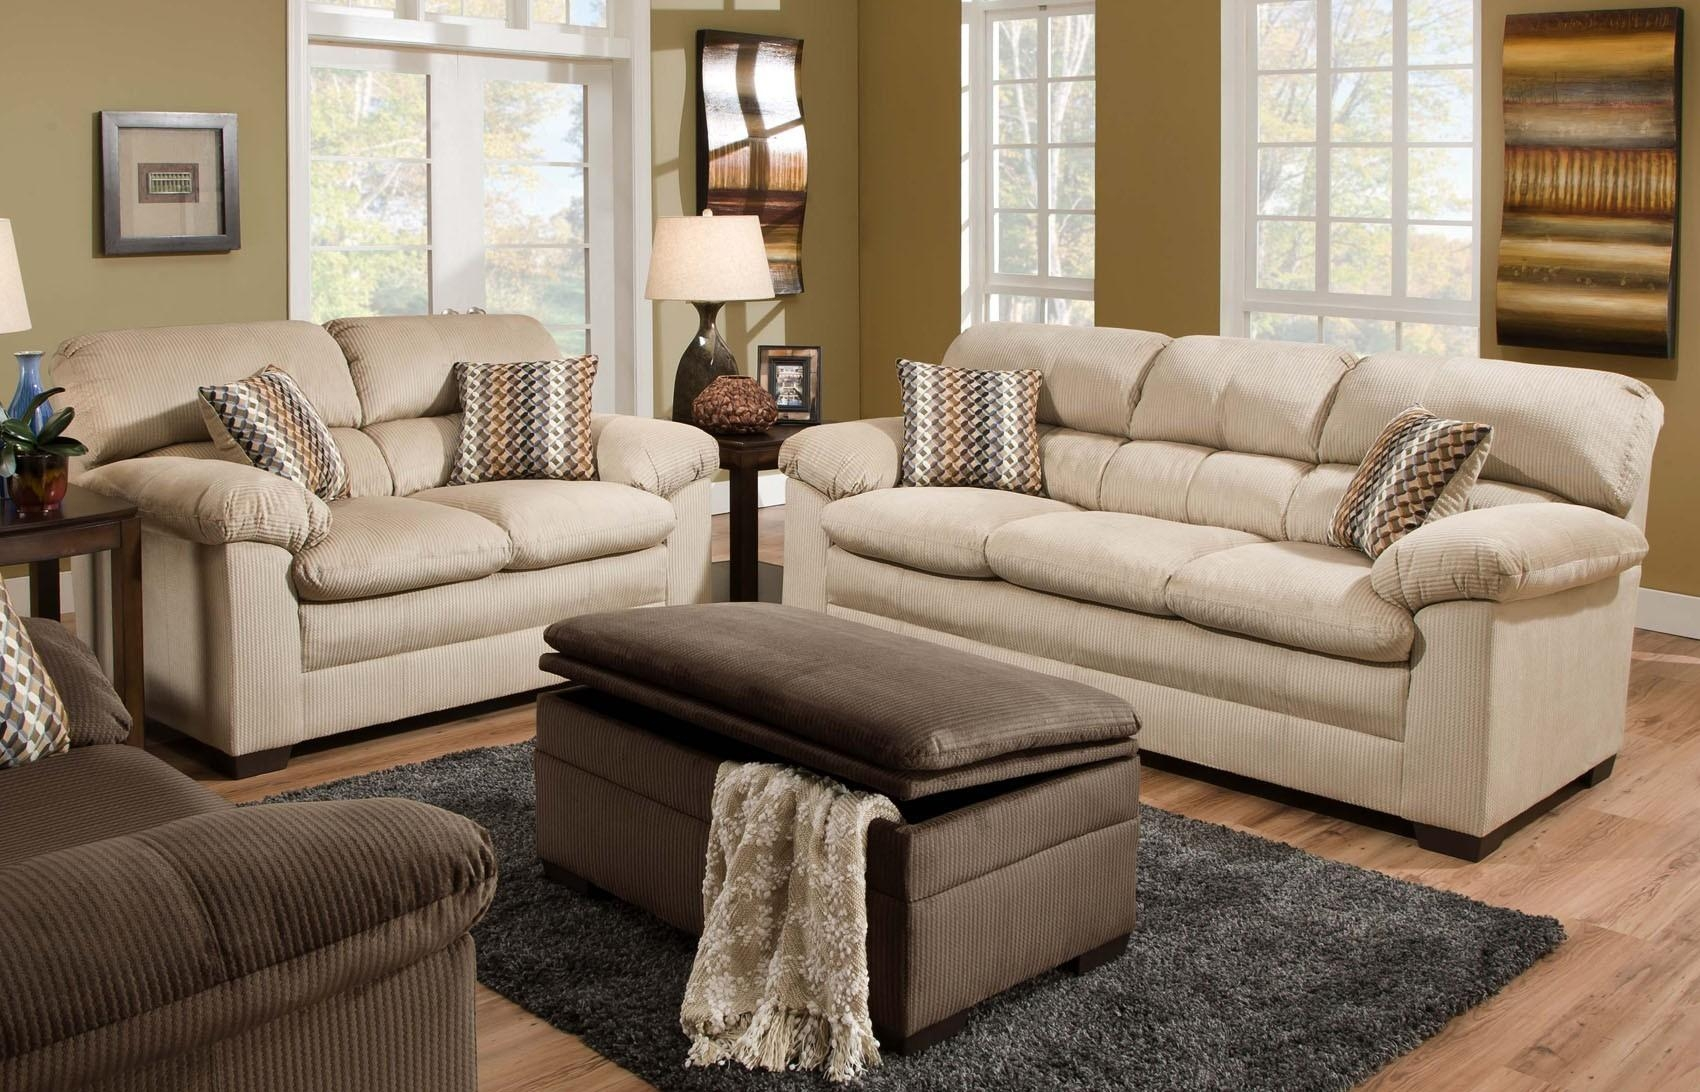 Lakewood Oversized Sofa & Loveseat Set (Beige) | Orange County, Ca In Sofa Orange County (Image 7 of 20)